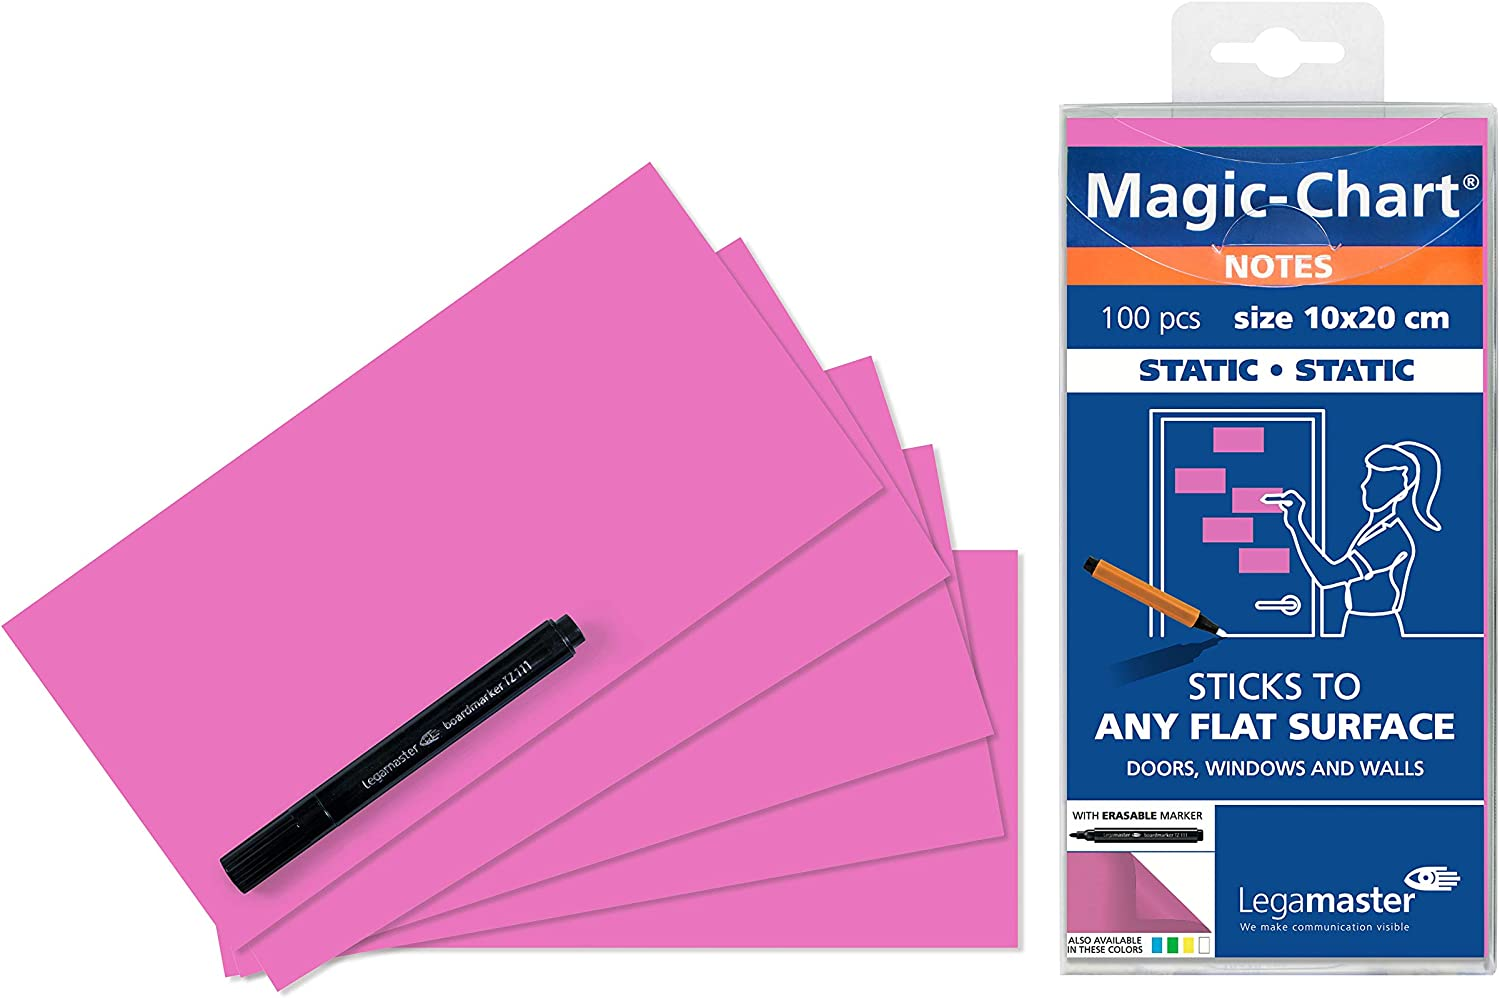 Legamaster 7-159409 Free shipping 10 x 20 cm Notes Max 57% OFF - Pack of Pink Magic-Chart